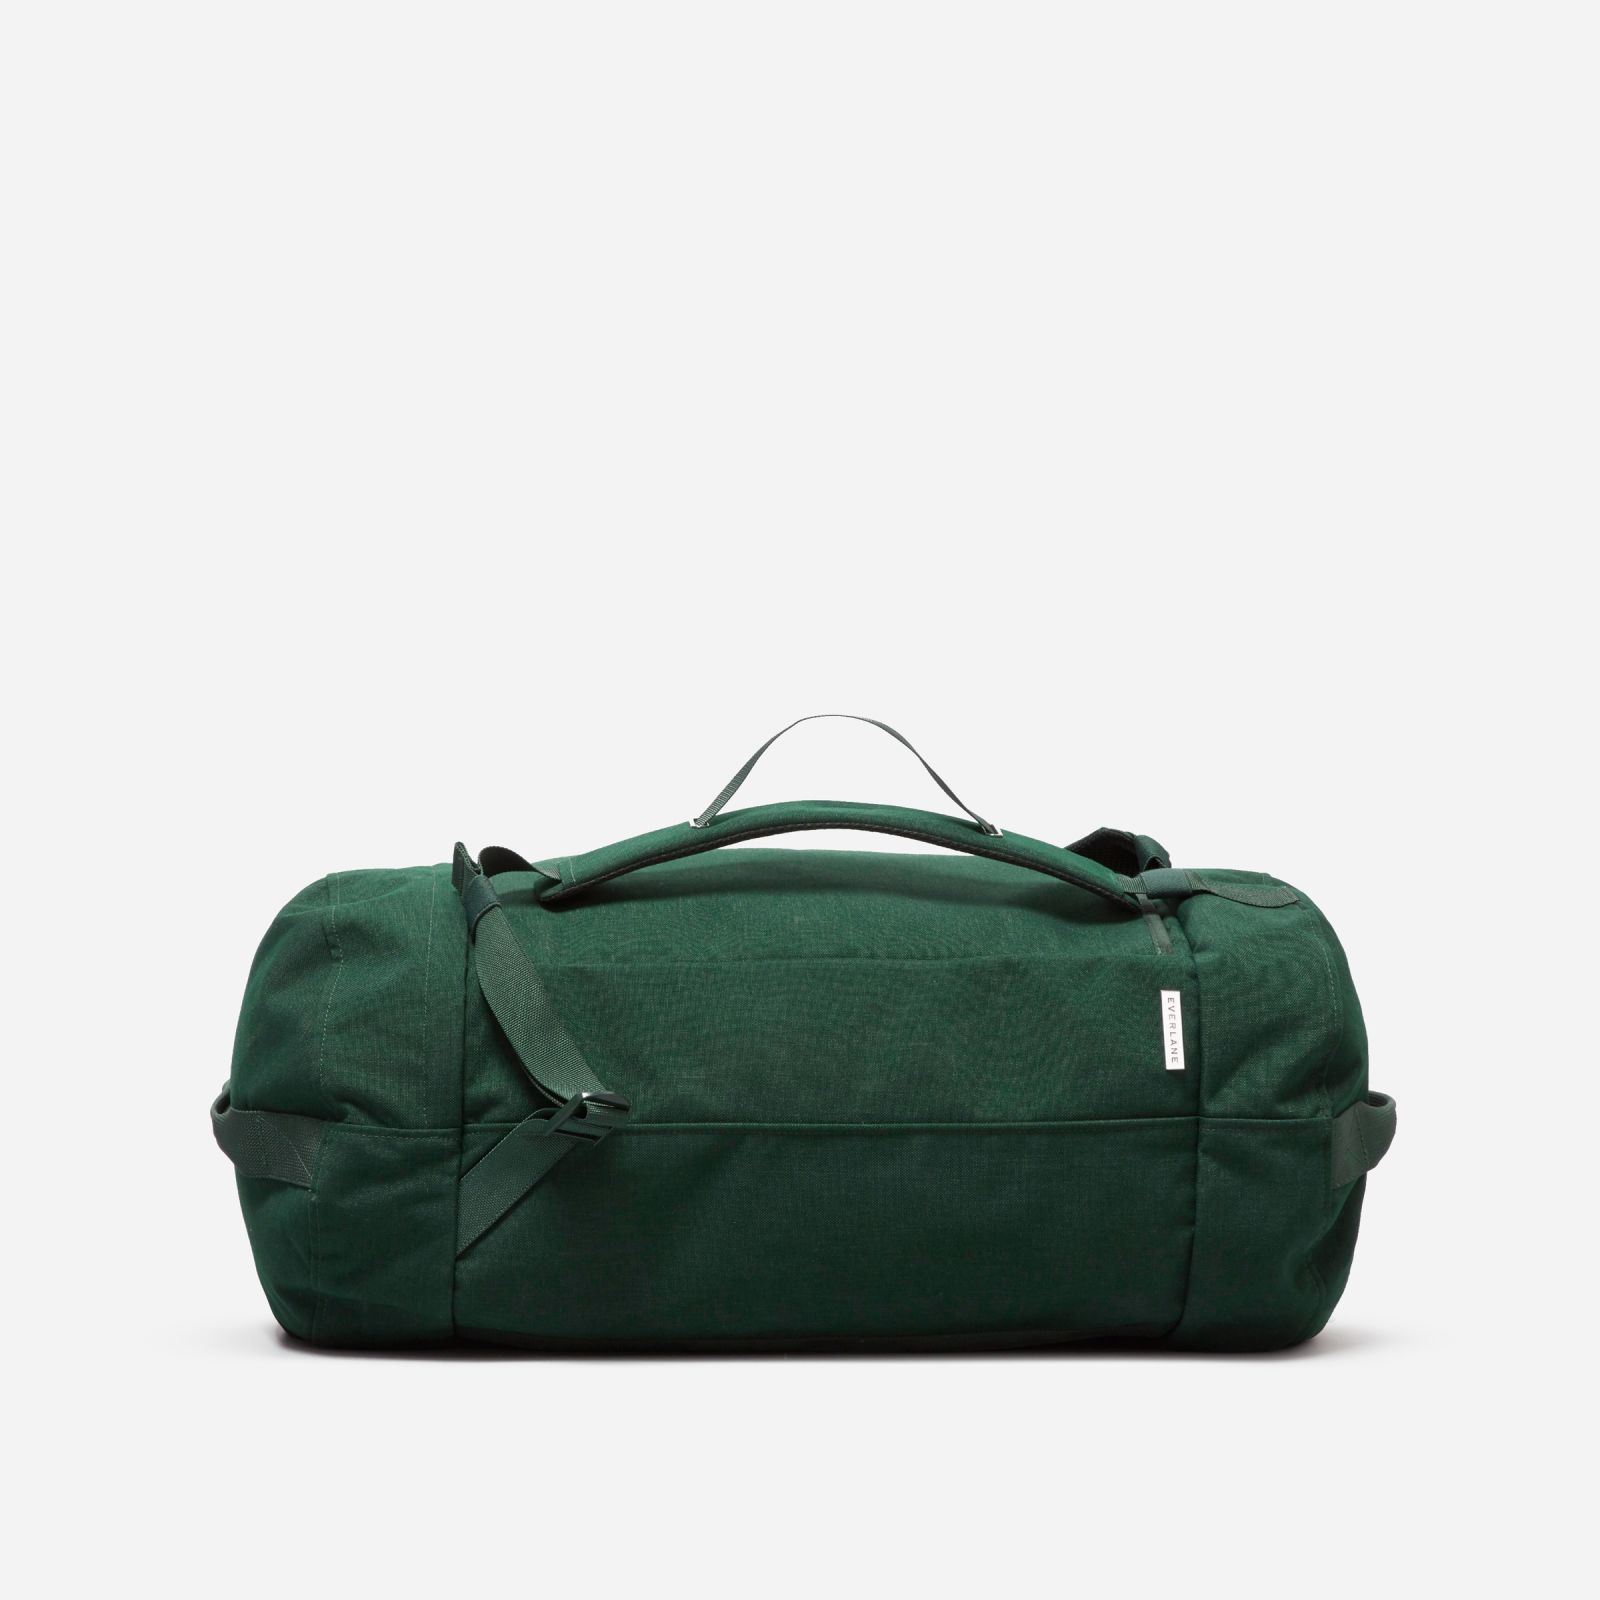 37dcd3ac6823 Travel Duffel Bag by Everlane in Dark Green | Products in 2019 ...